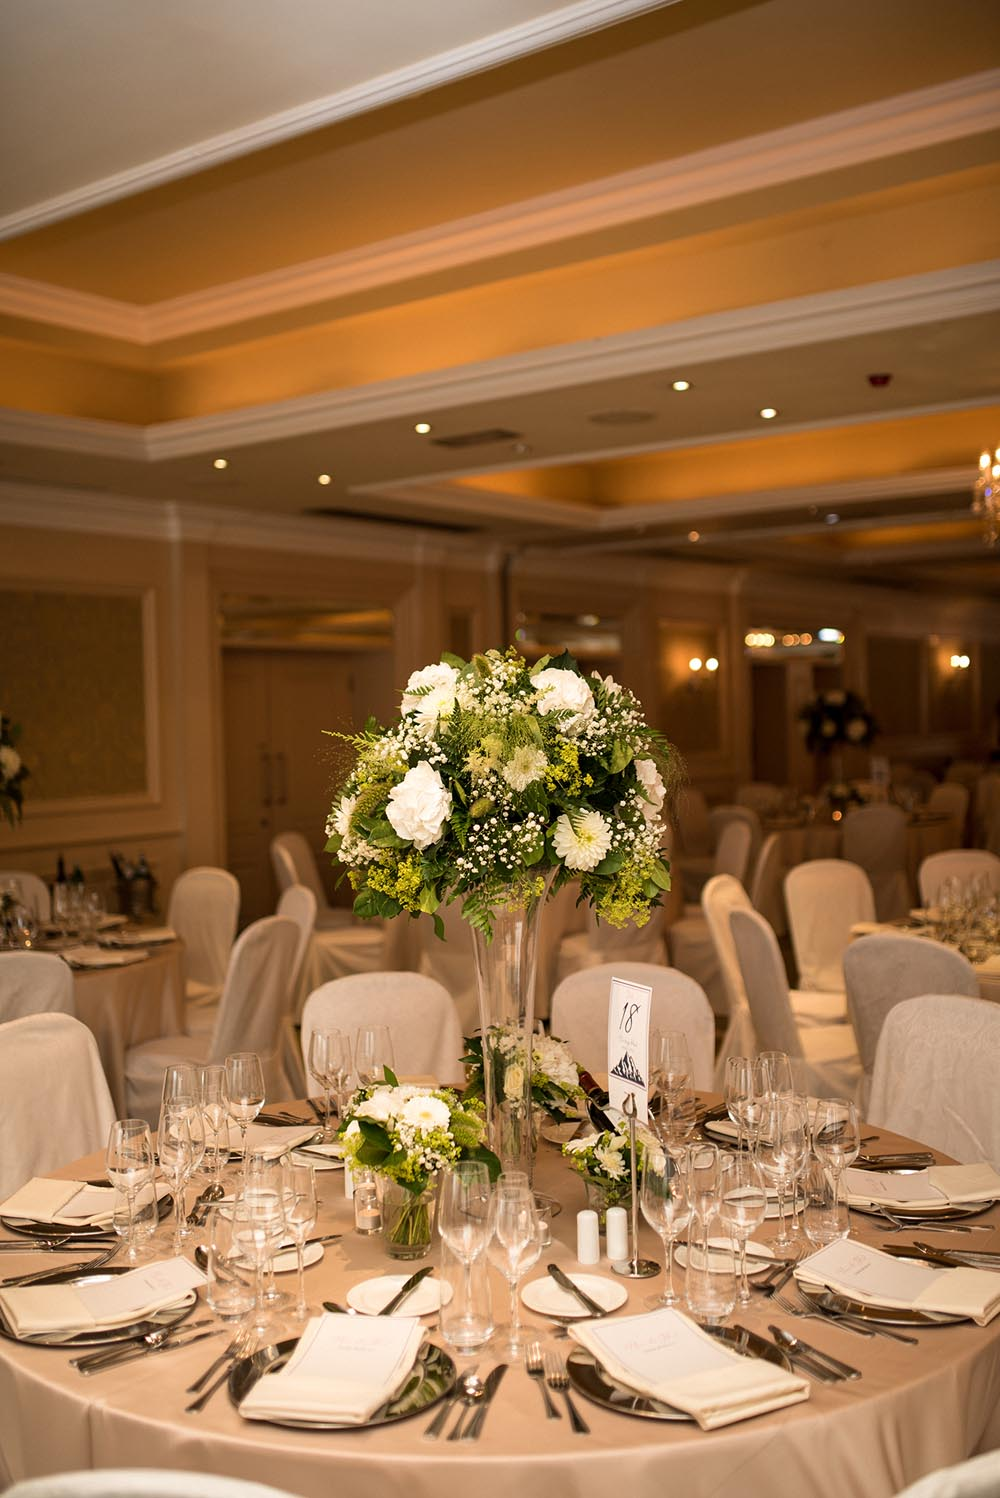 Table setting at the Newpark Hotel Kilkenny